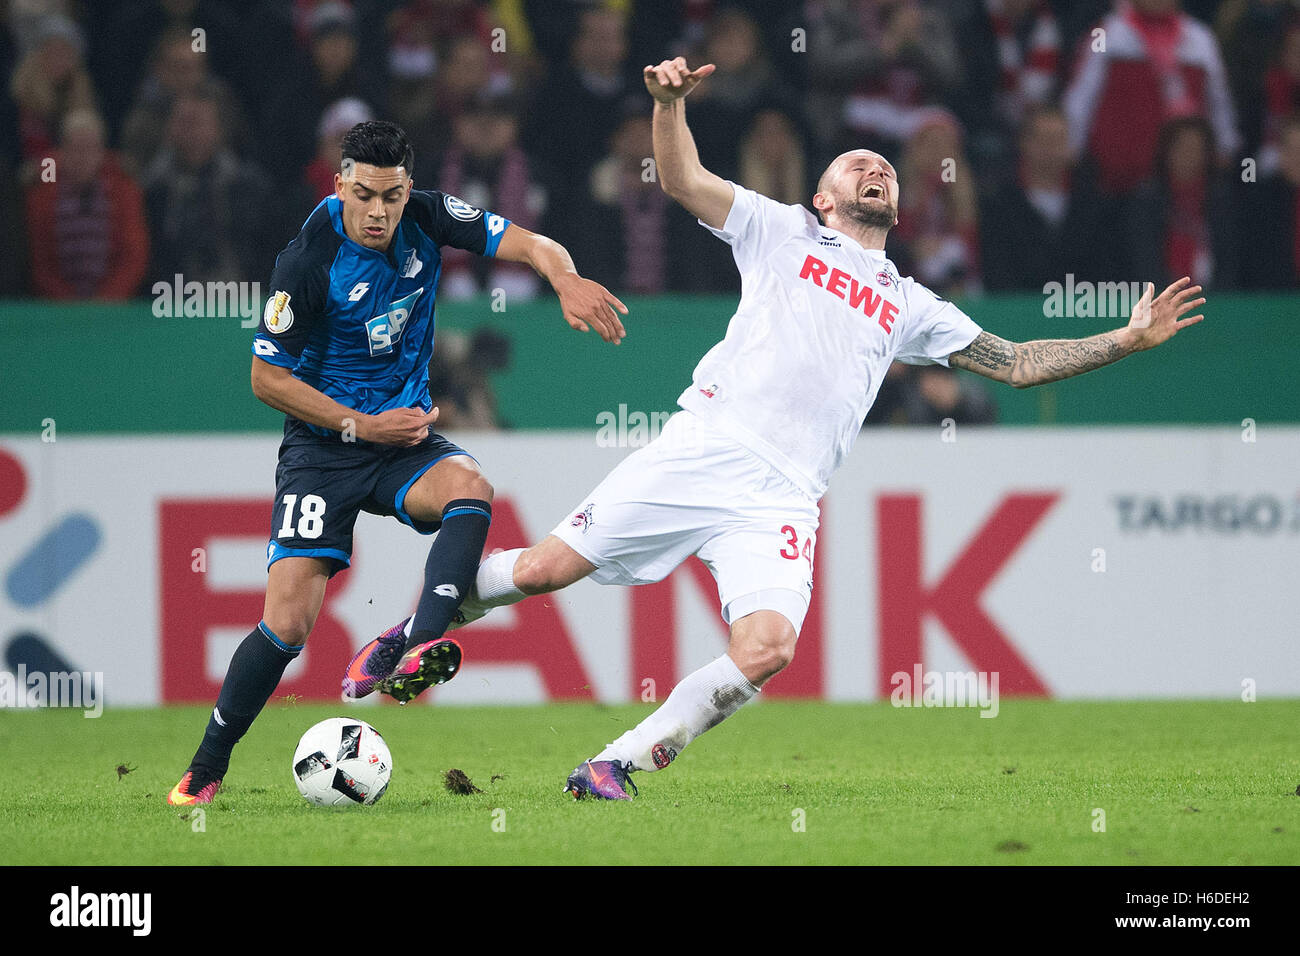 Cologne, Germany. 26th Oct, 2016. Hoffenheim's Nadiem Amiri (L) and FC Cologne's Konstantin Rausch compete - Stock Image